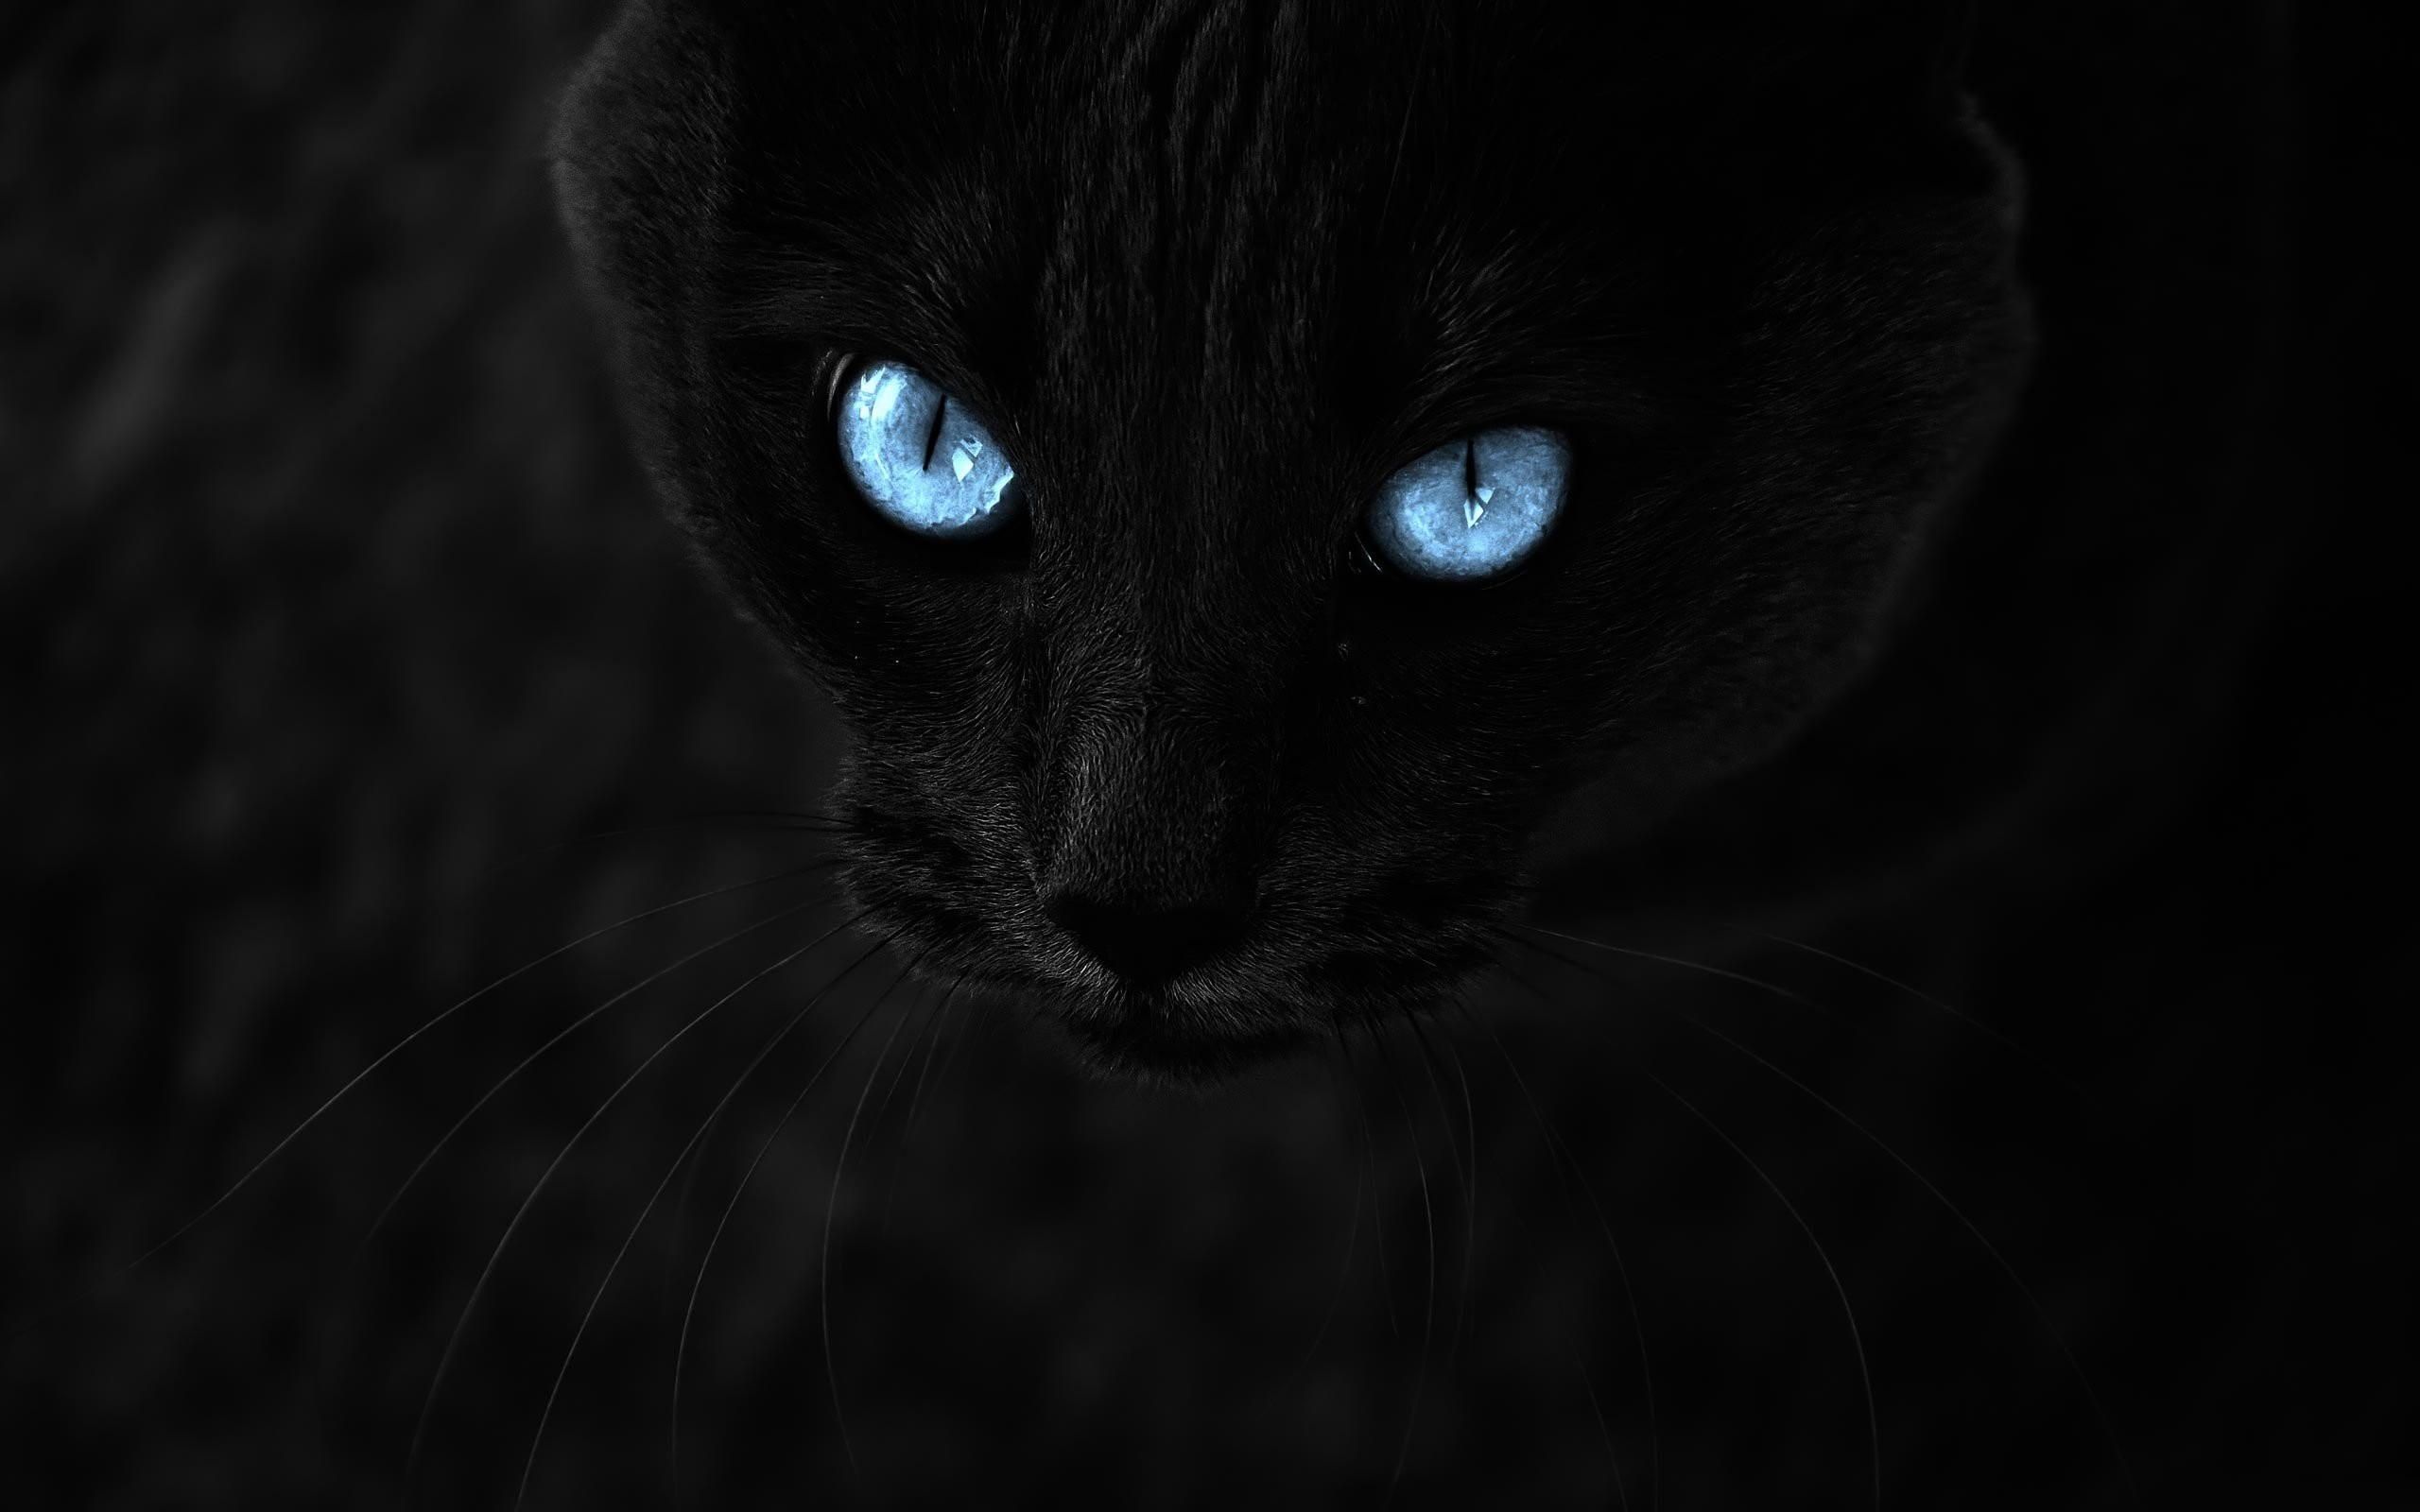 Black Cat With Blue Eyes 871579 2560x1600